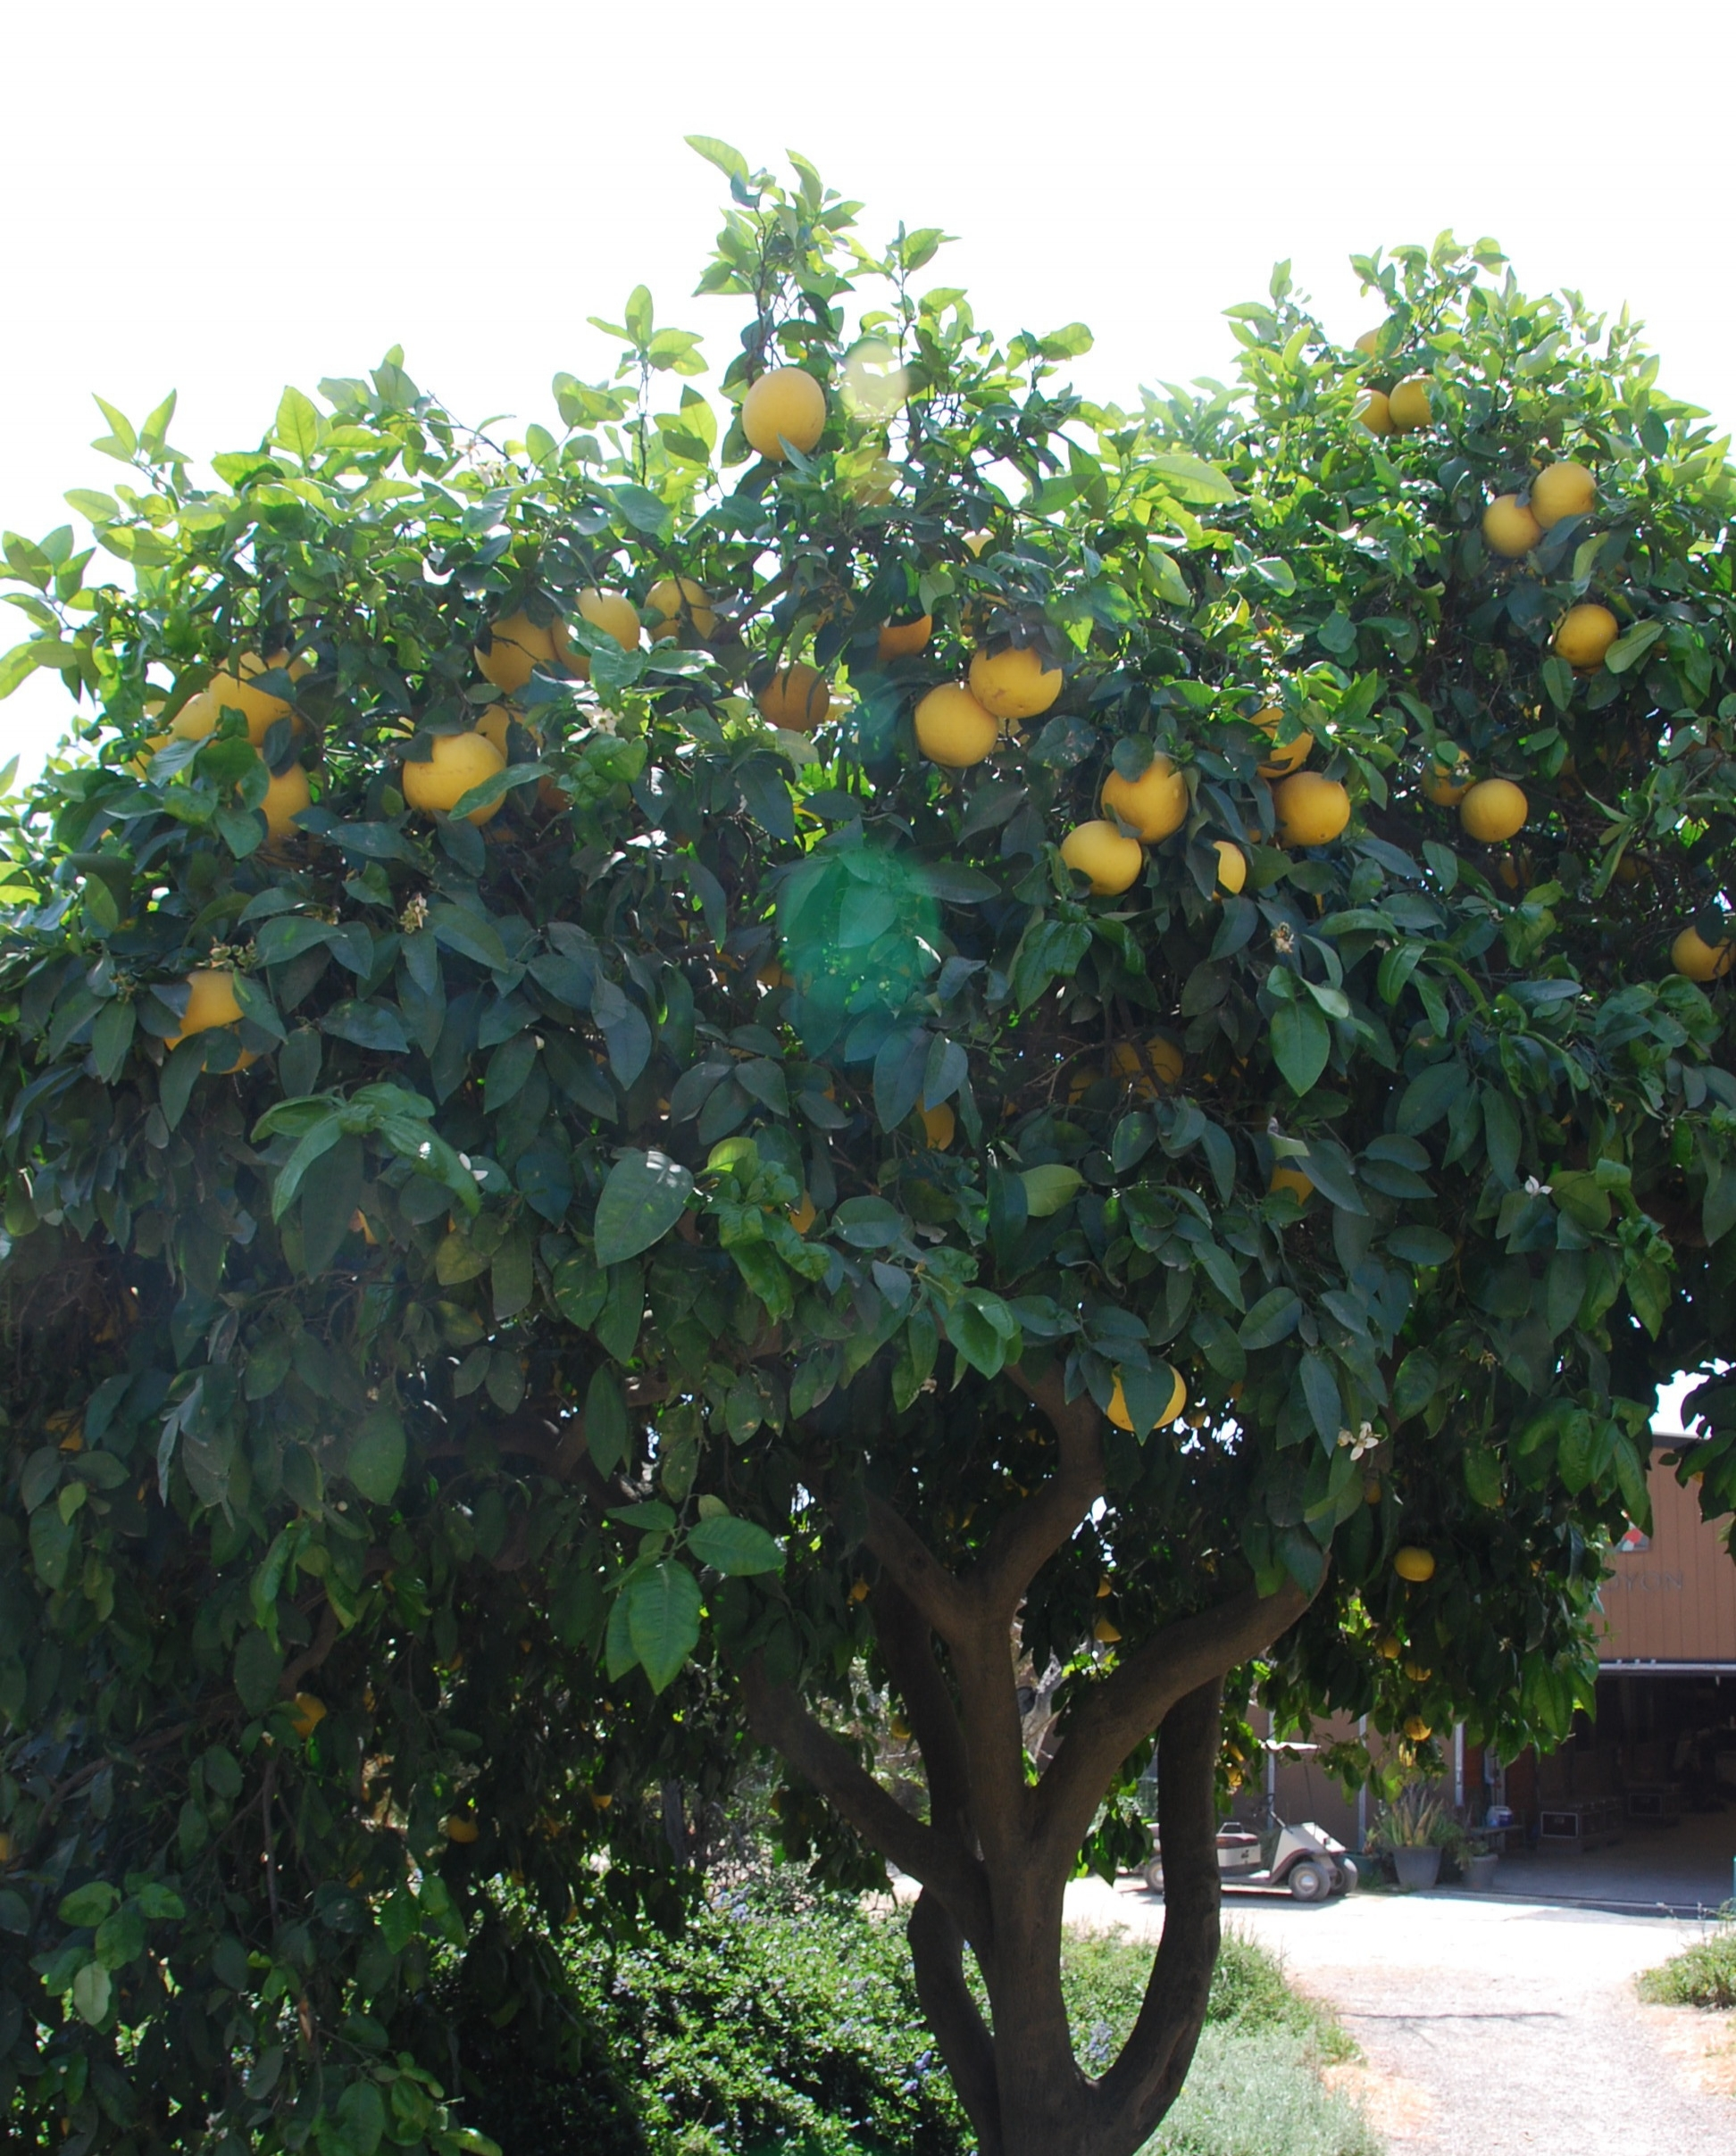 Grapefruit ready to harvest by the Euro Walker